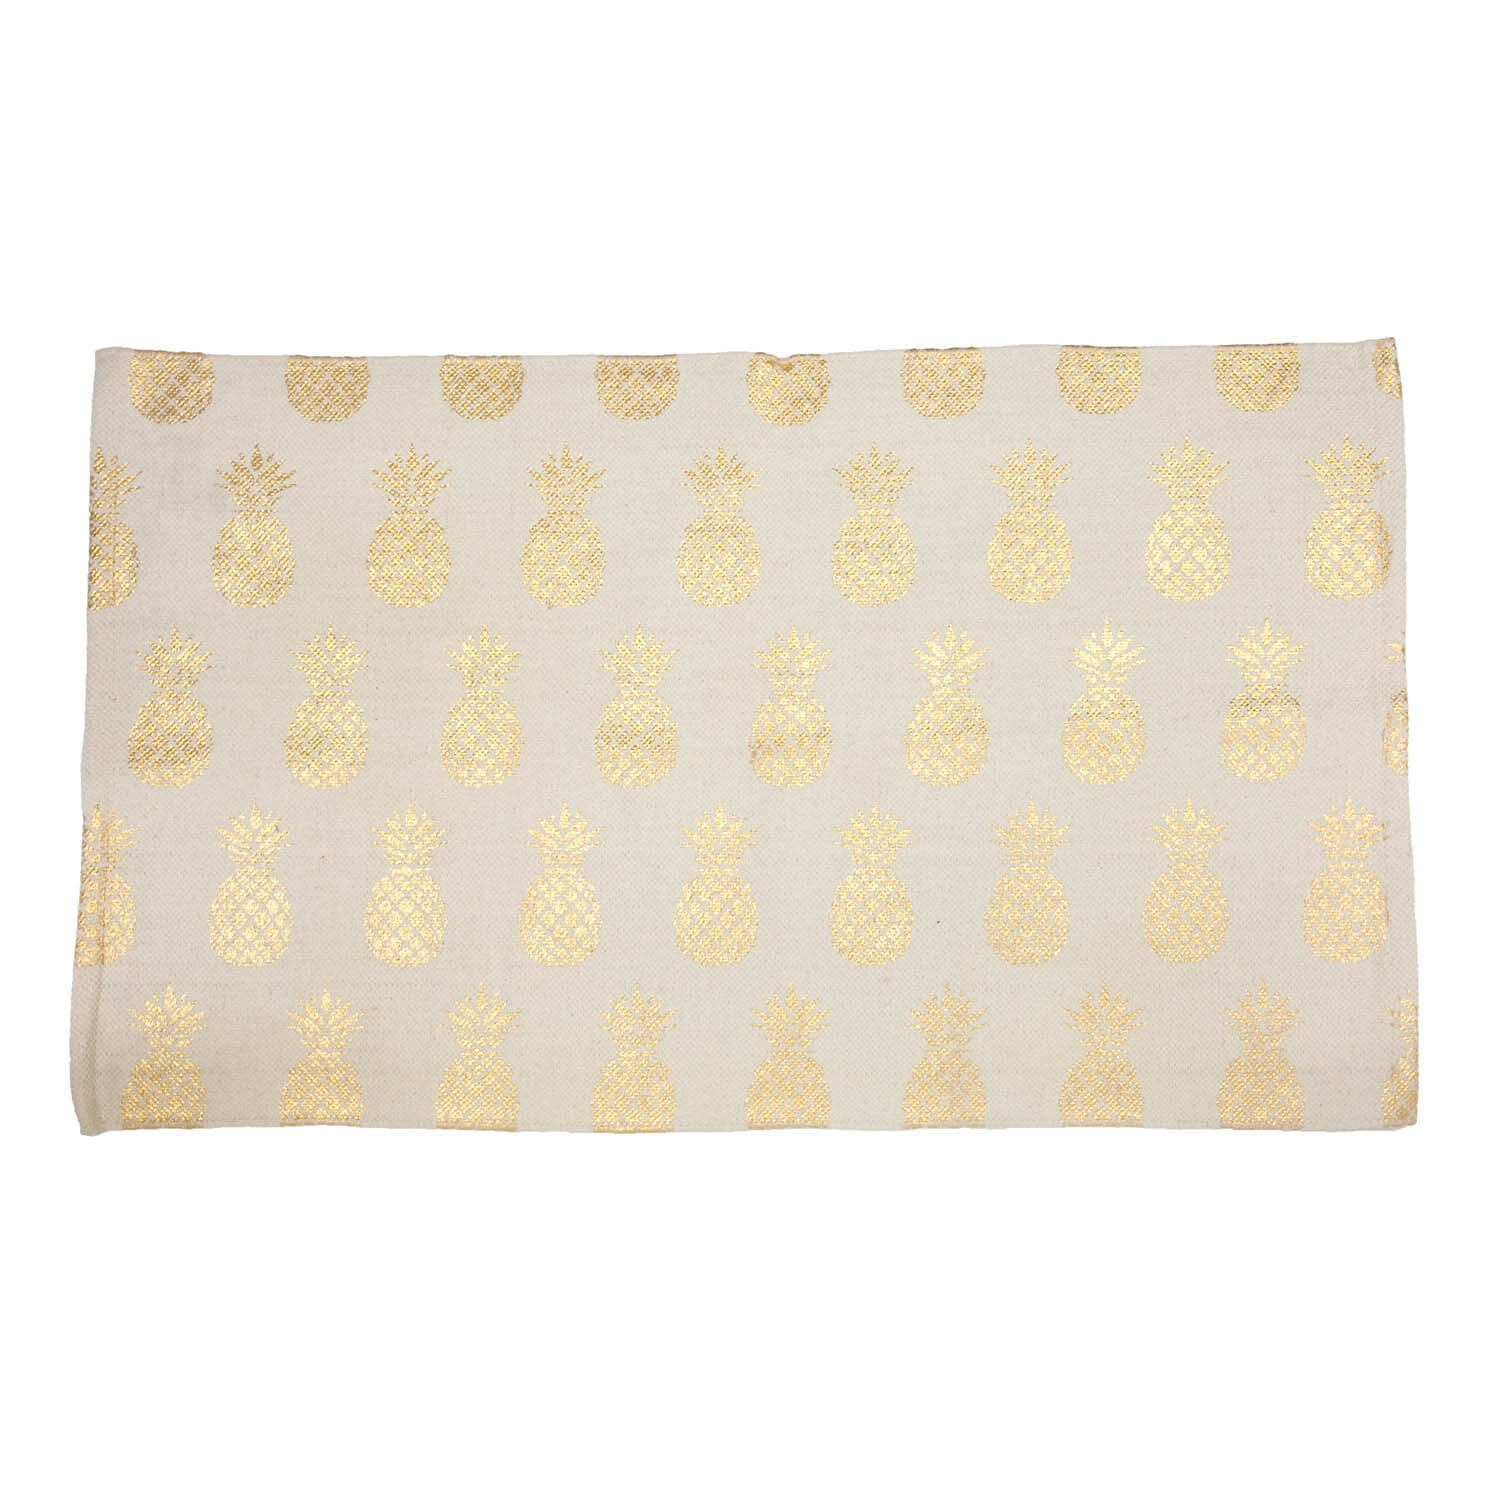 Pineapple Gold Foil Printed Accent Rug